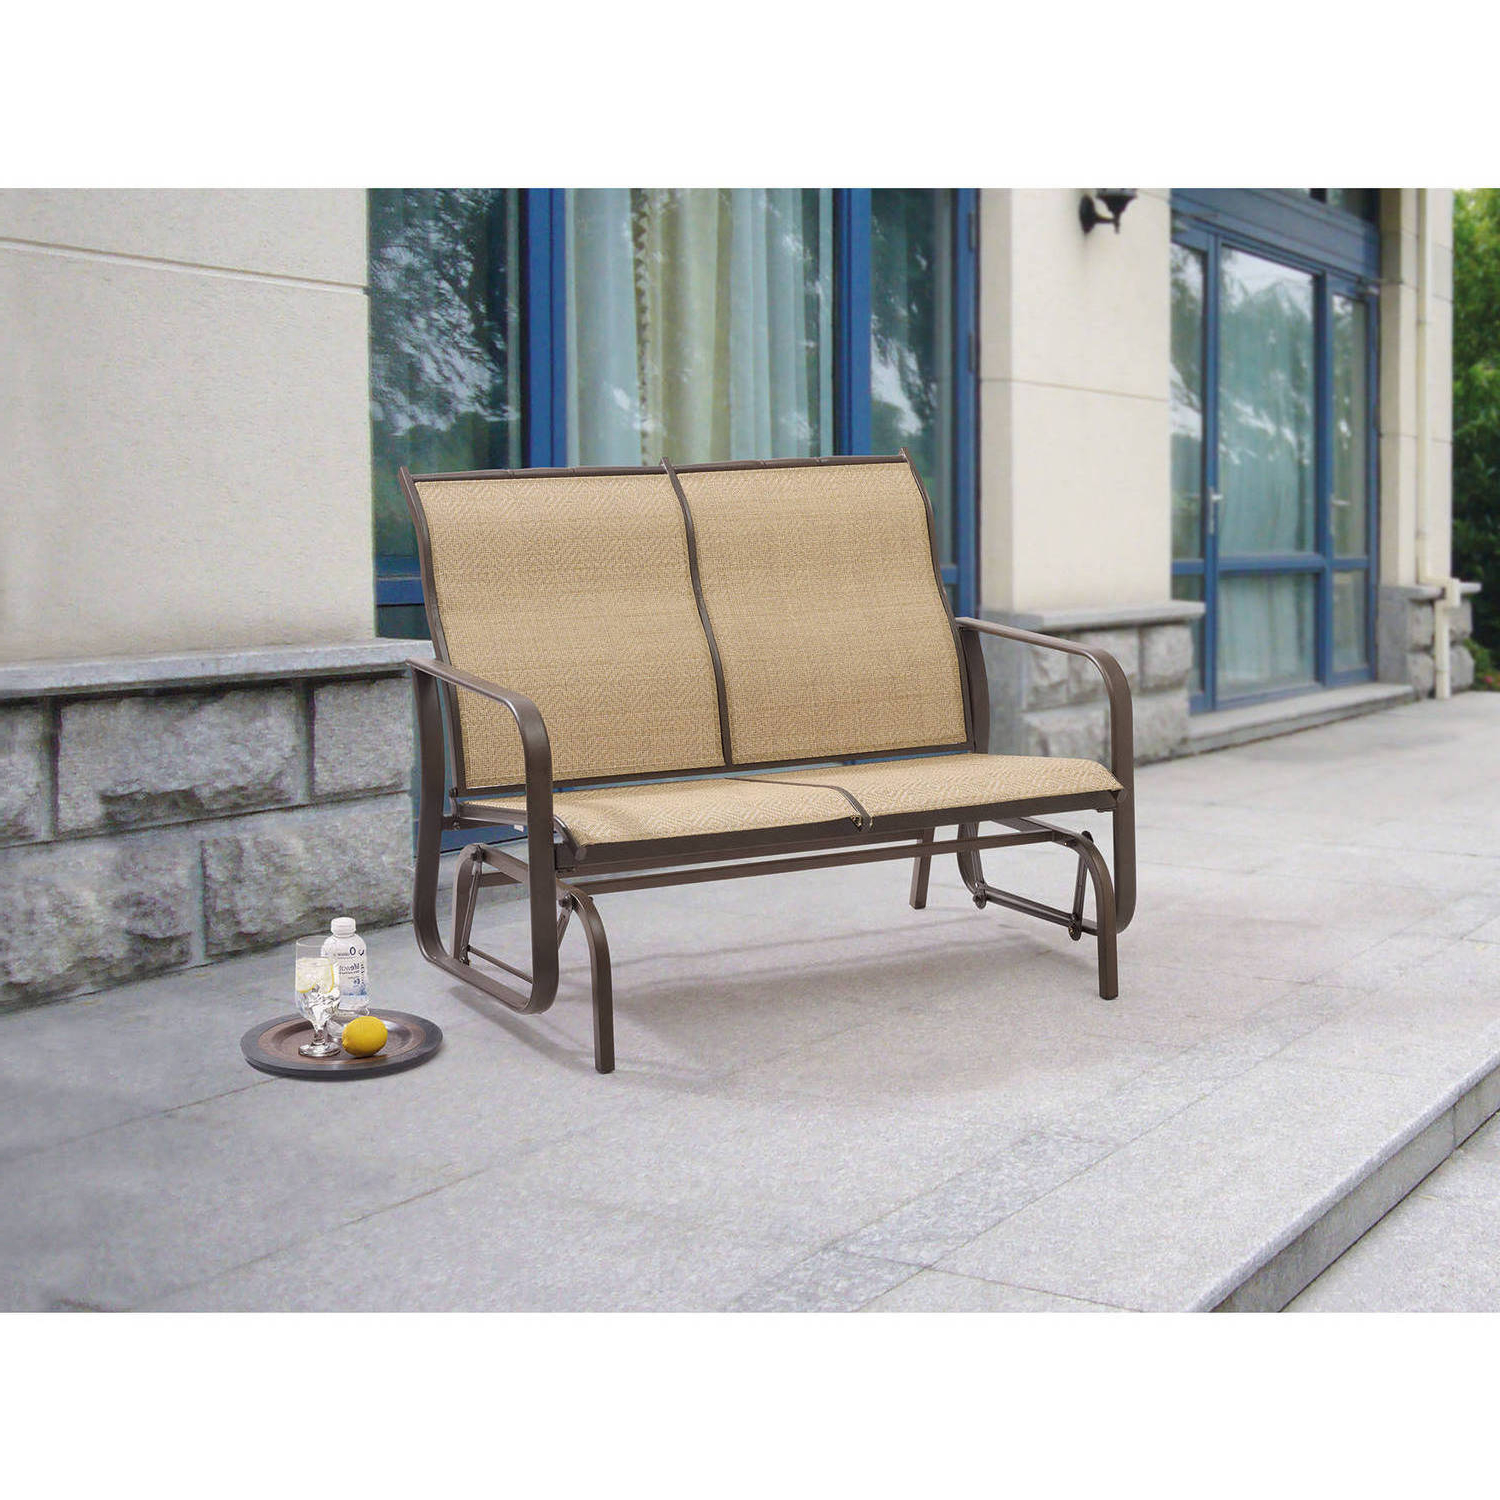 2020 Metal Powder Coat Double Seat Glider Benches In Mainstays Wesley Creek 2 Seat Outdoor Sling Seat Glider (View 1 of 30)